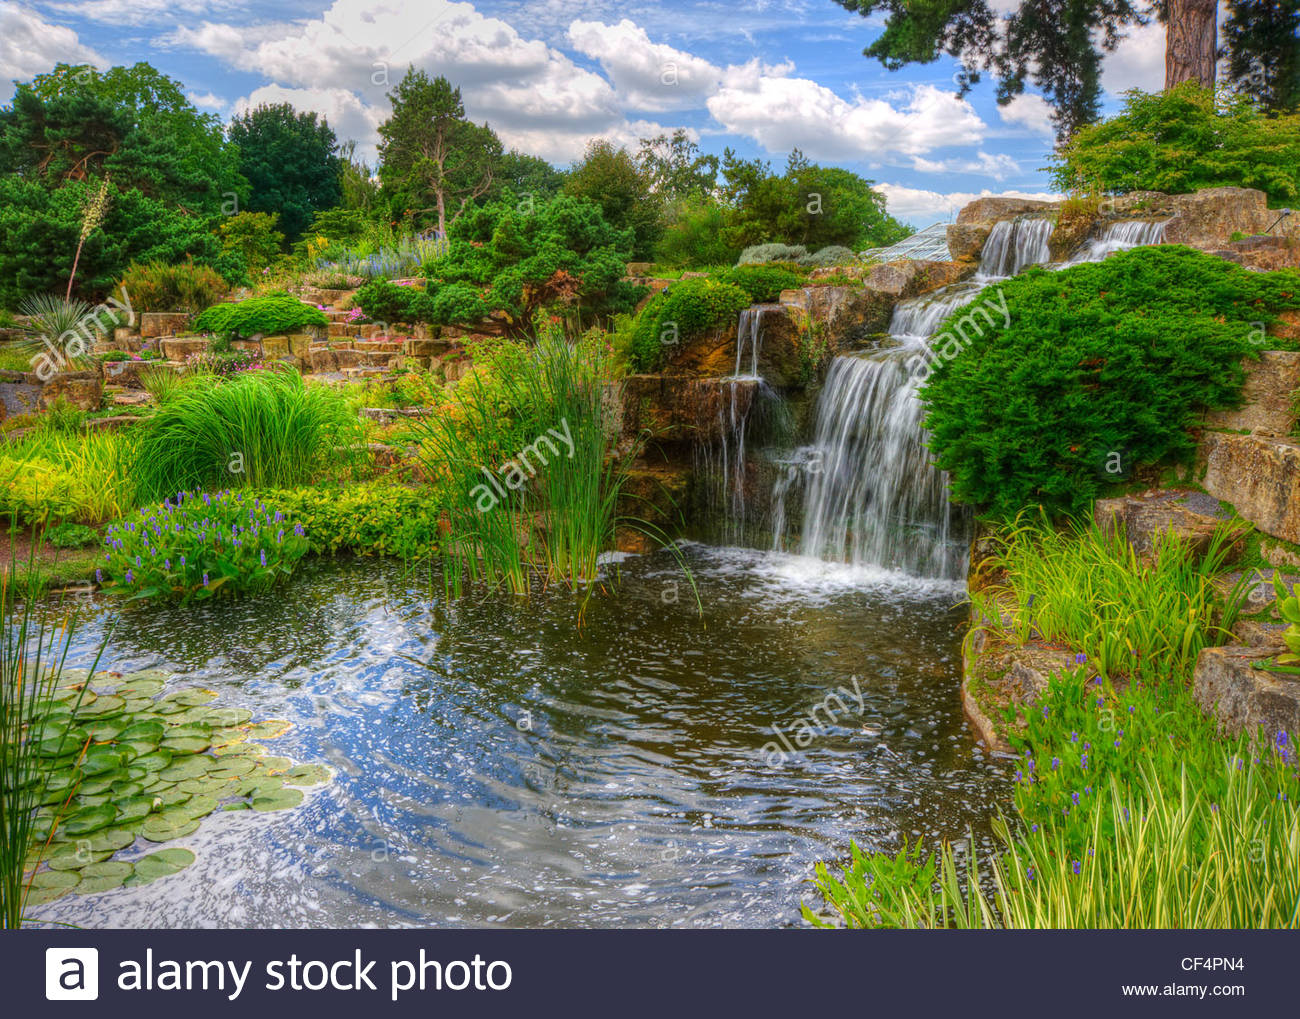 Waterfall in the Rock Garden at Kew Gardens. - Stock Image